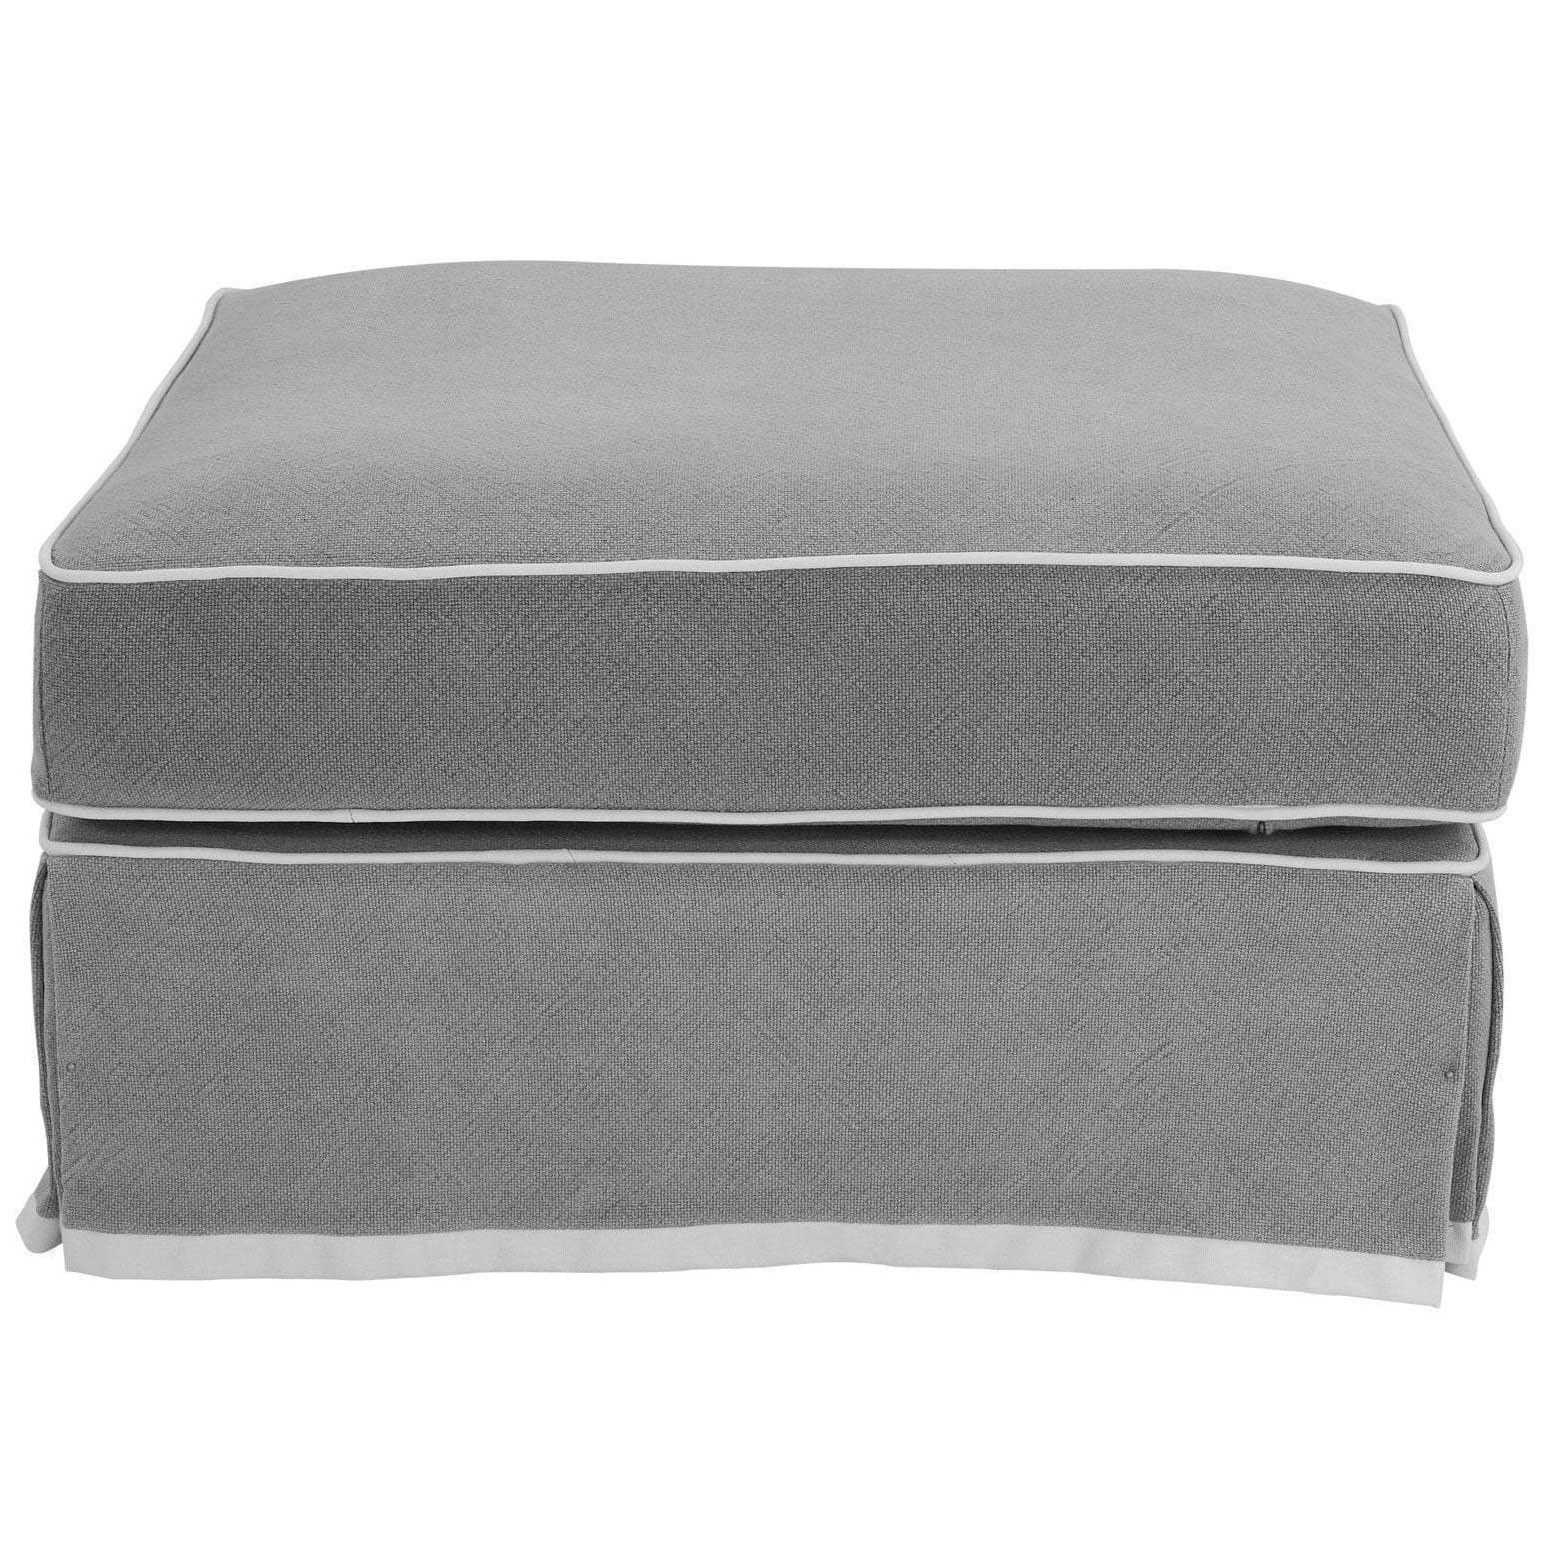 Noosa Fabric Ottoman Slipcover (Cover Only), Grey with White Piping